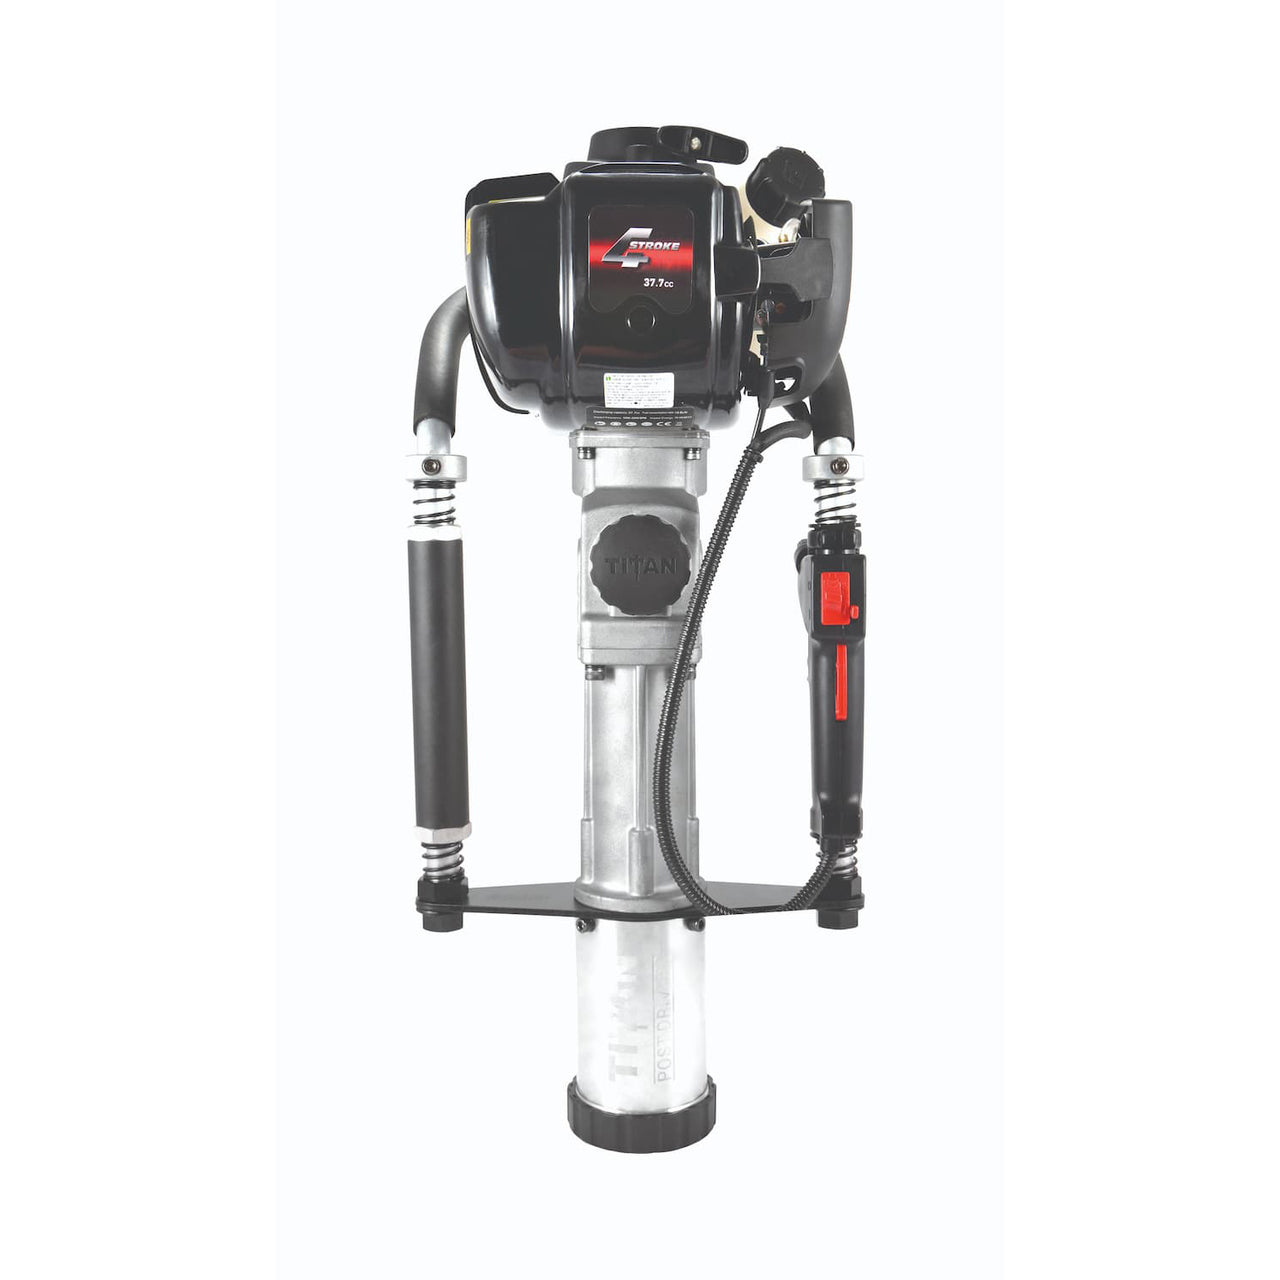 Titan PGD2875 Gas Powered Post Driver